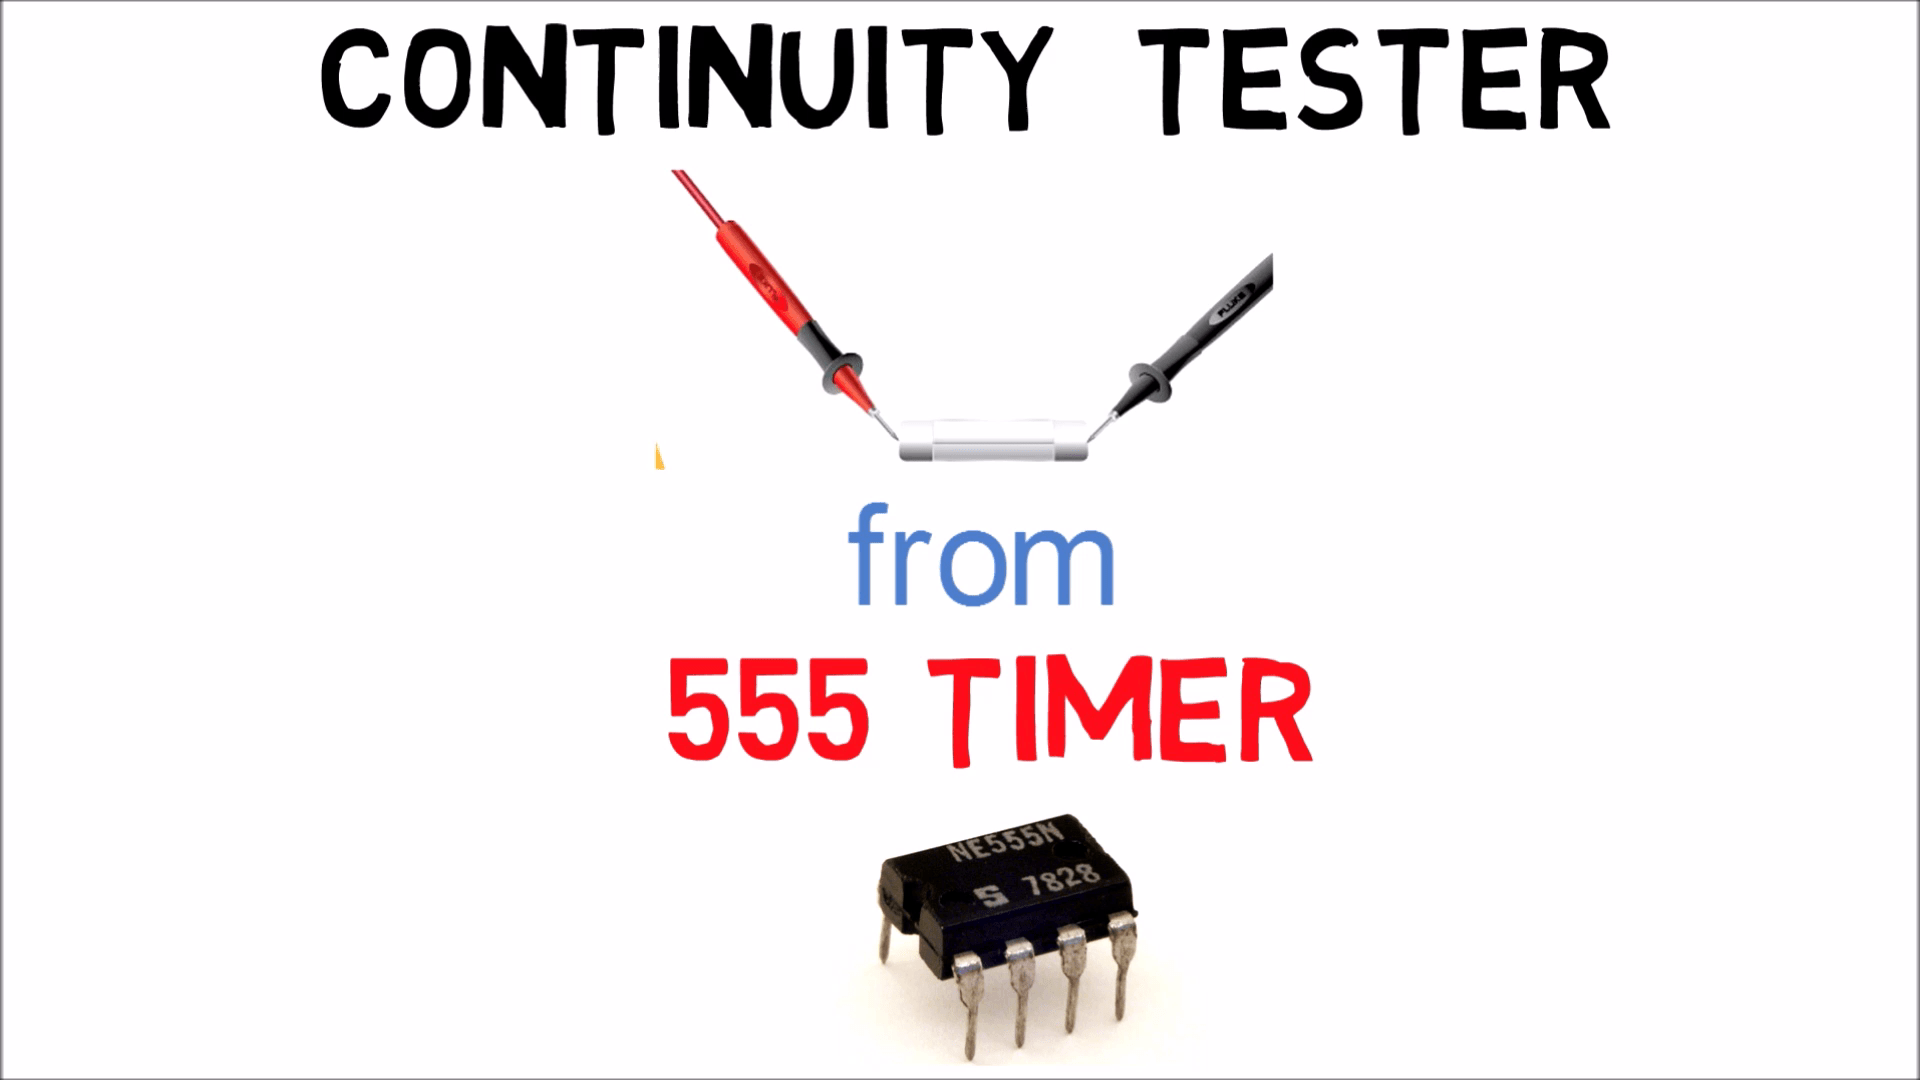 HOW TO MAKE A CONTINUITY TESTER USING 555 TIMER | DIY ELECTRONIC ...